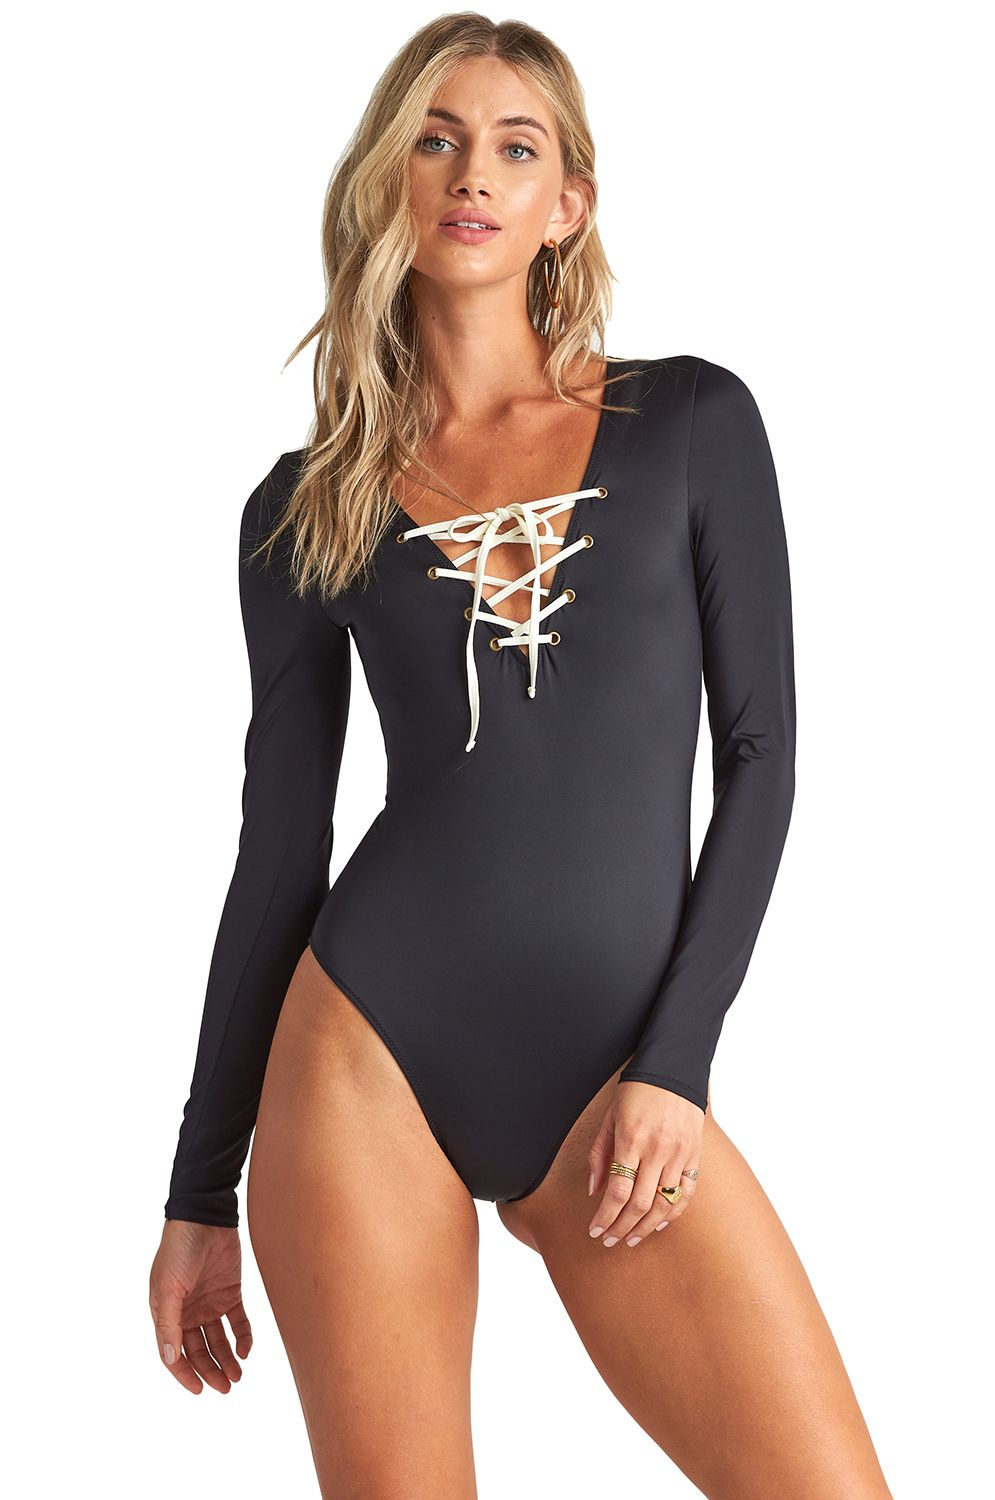 Billabong Swimsuit ONYX WAVE BOBYSUIT SURF CAPSULE Black